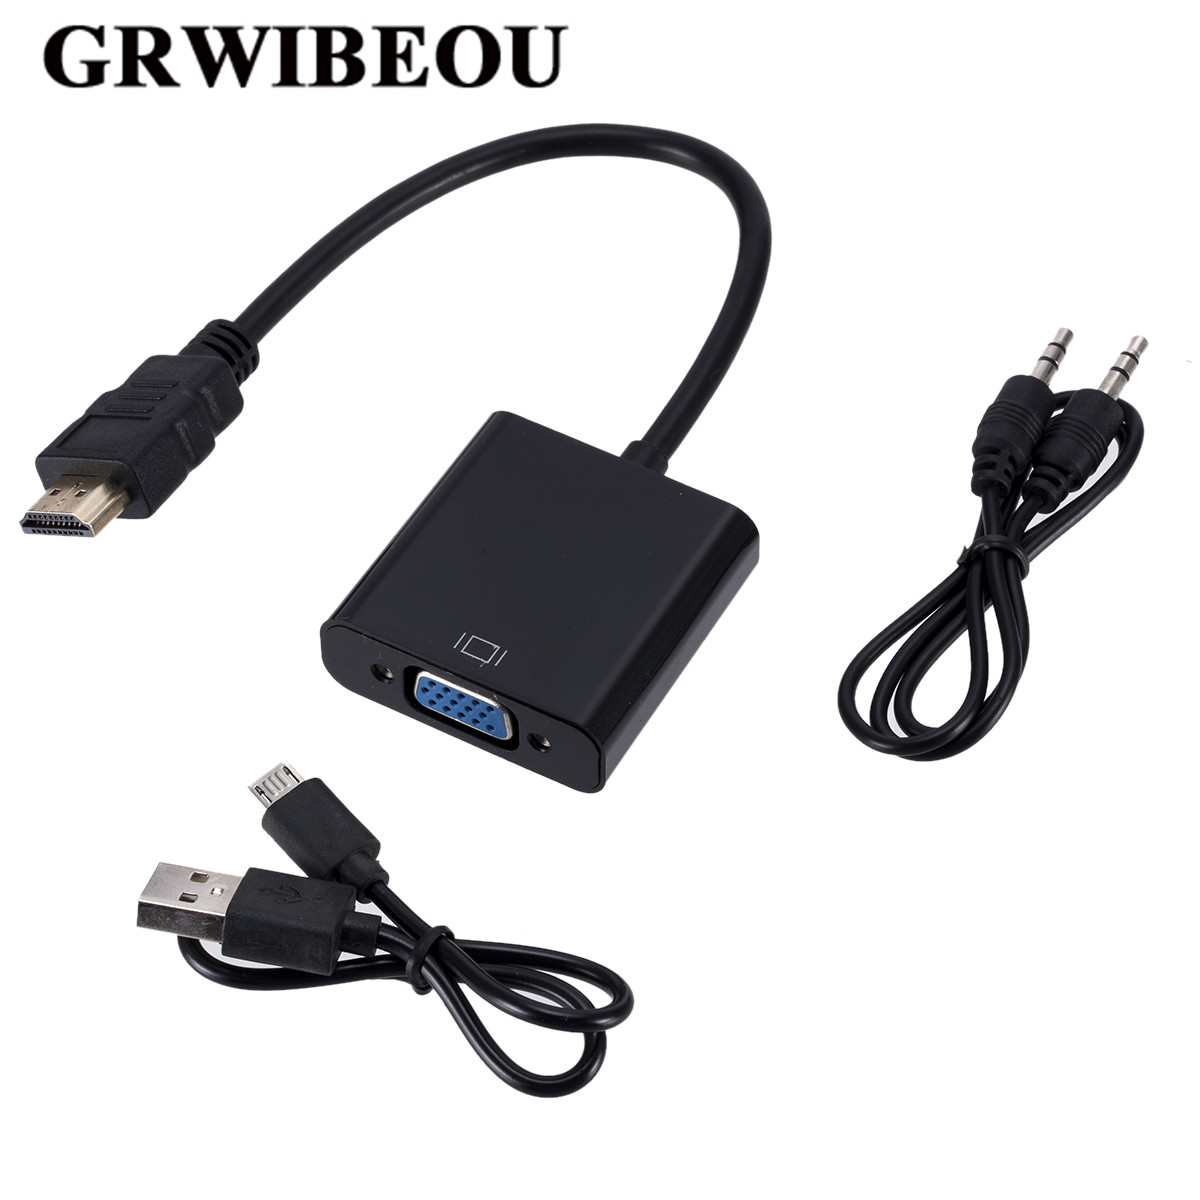 Grwibeou HDMI to VGA Adapter with 3.5mm Audio Cable + USB Power Supply 1080P Digital to Analog Video Audio For PC Laptop Tablet